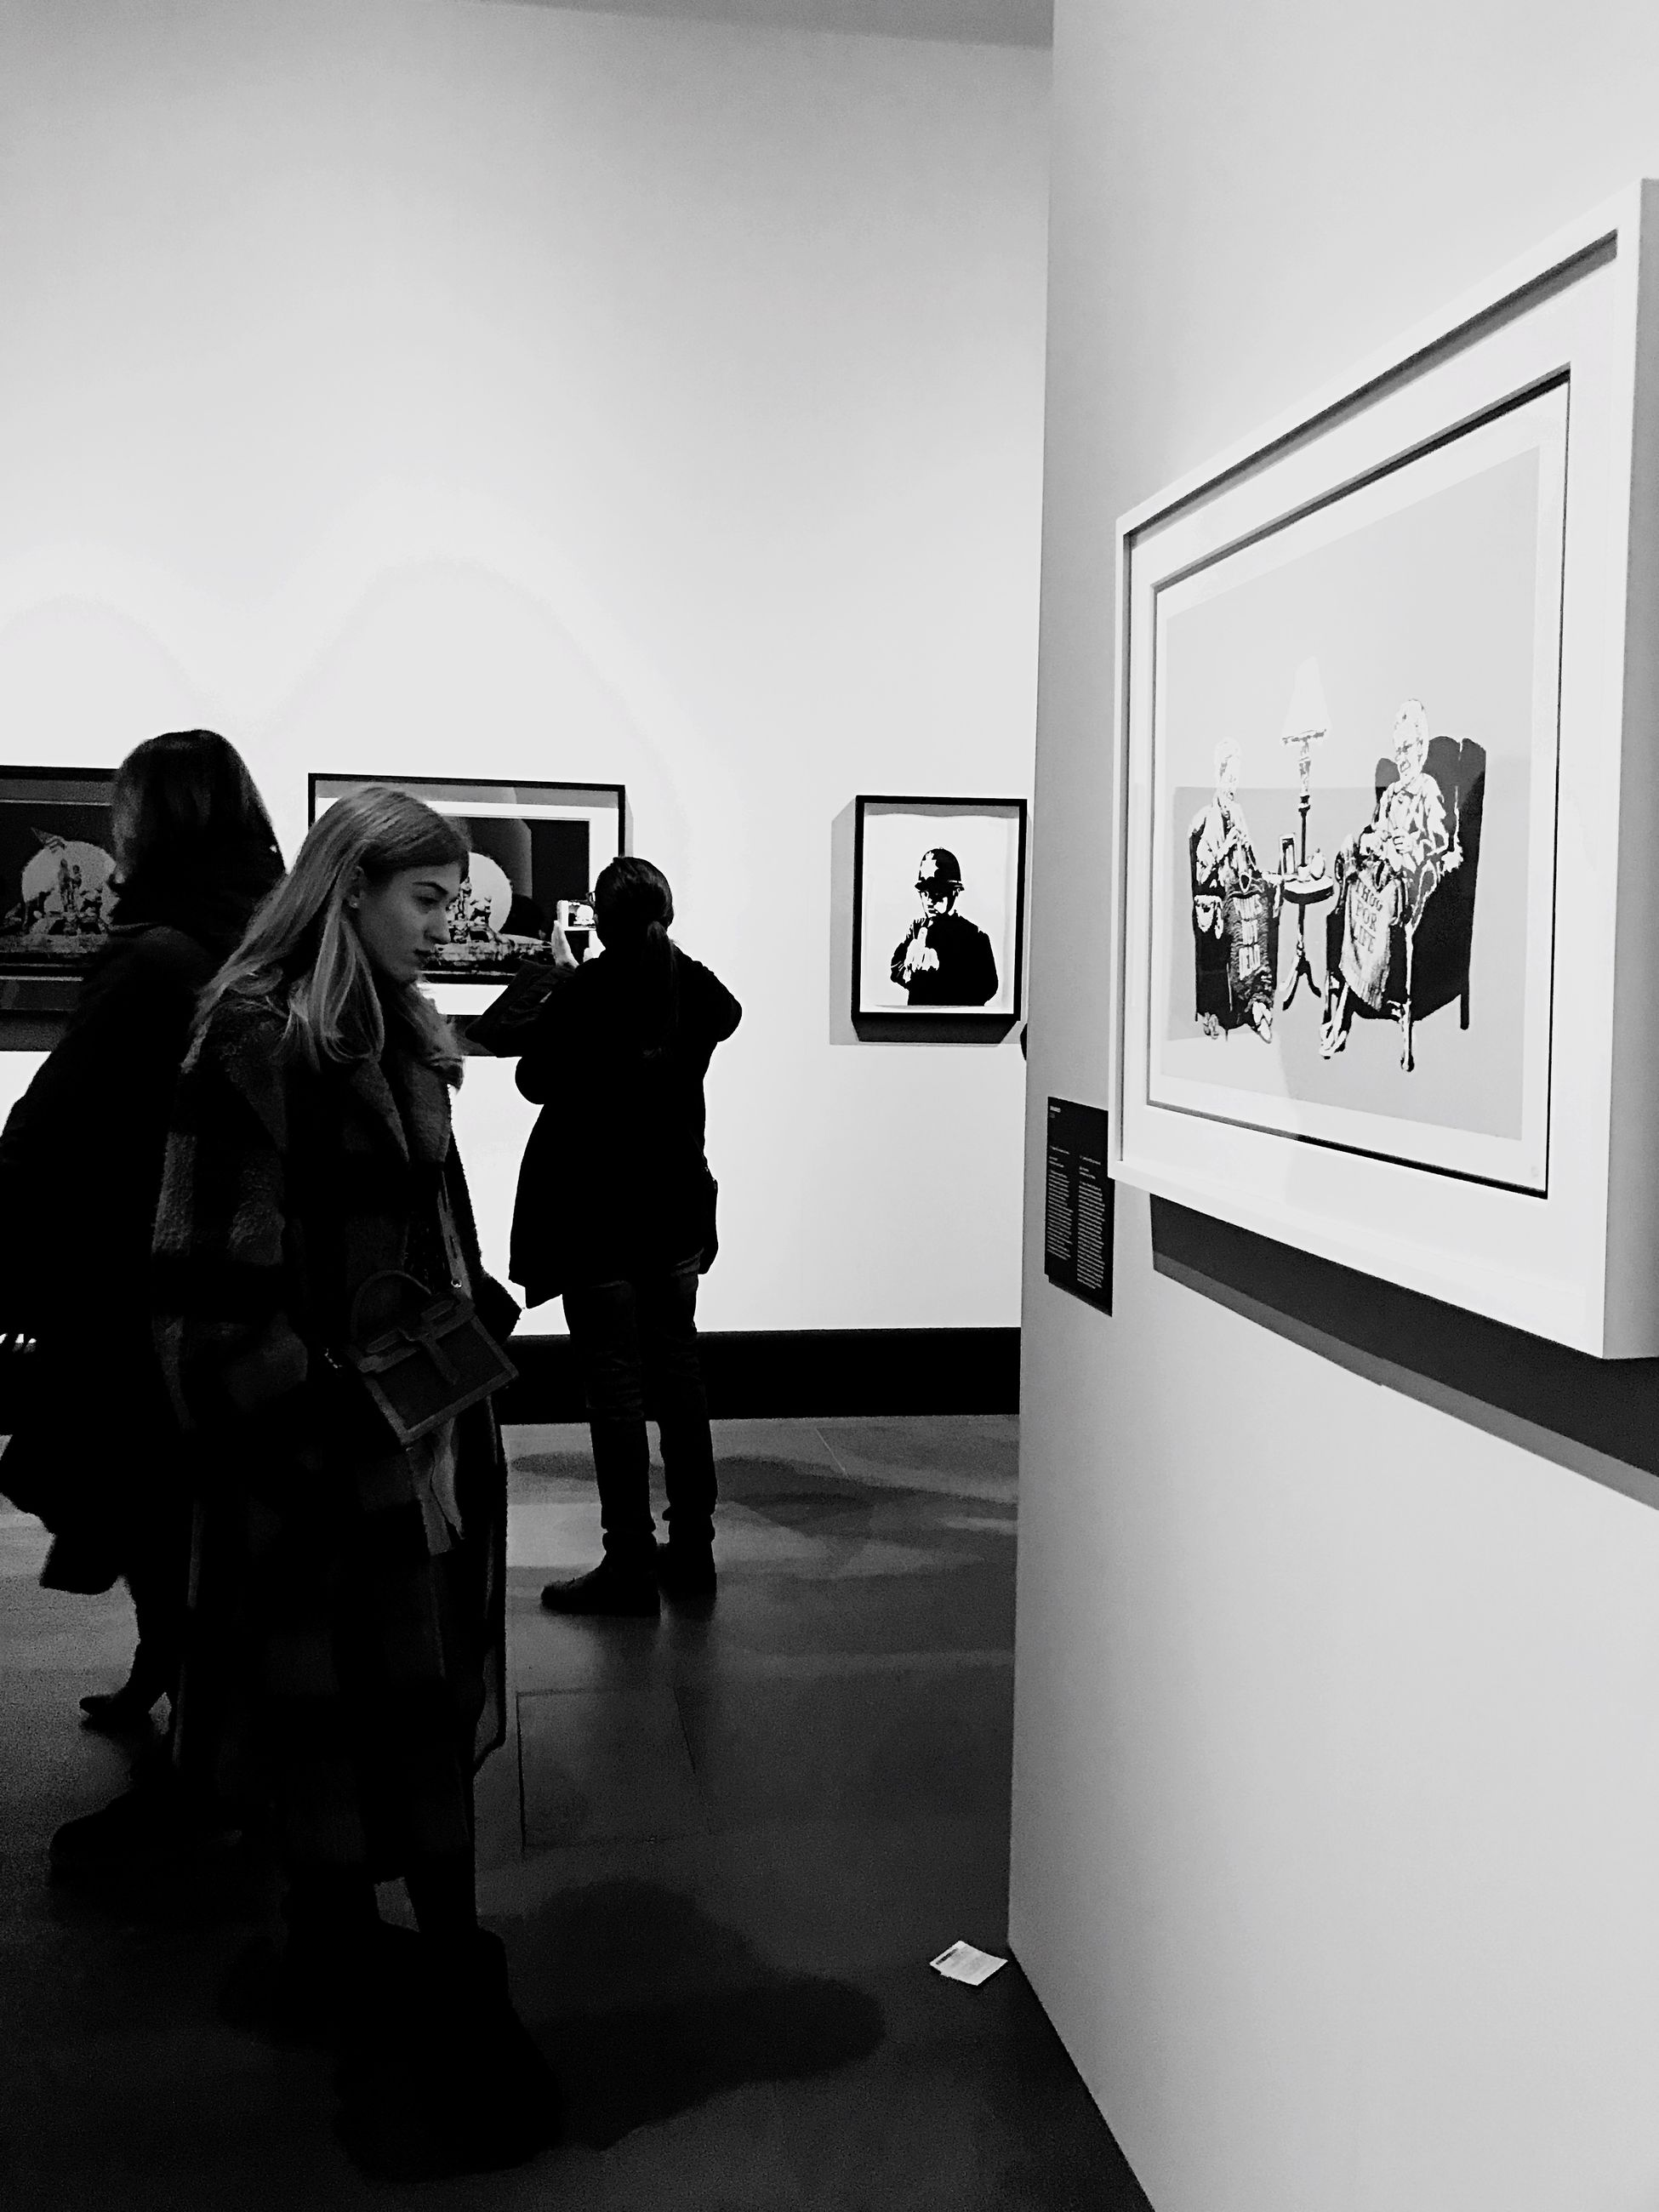 real people, standing, indoors, men, photography themes, technology, lifestyles, frame, picture frame, people, exhibition, clothing, photographing, full length, representation, art museum, leisure activity, human representation, wall - building feature, looking